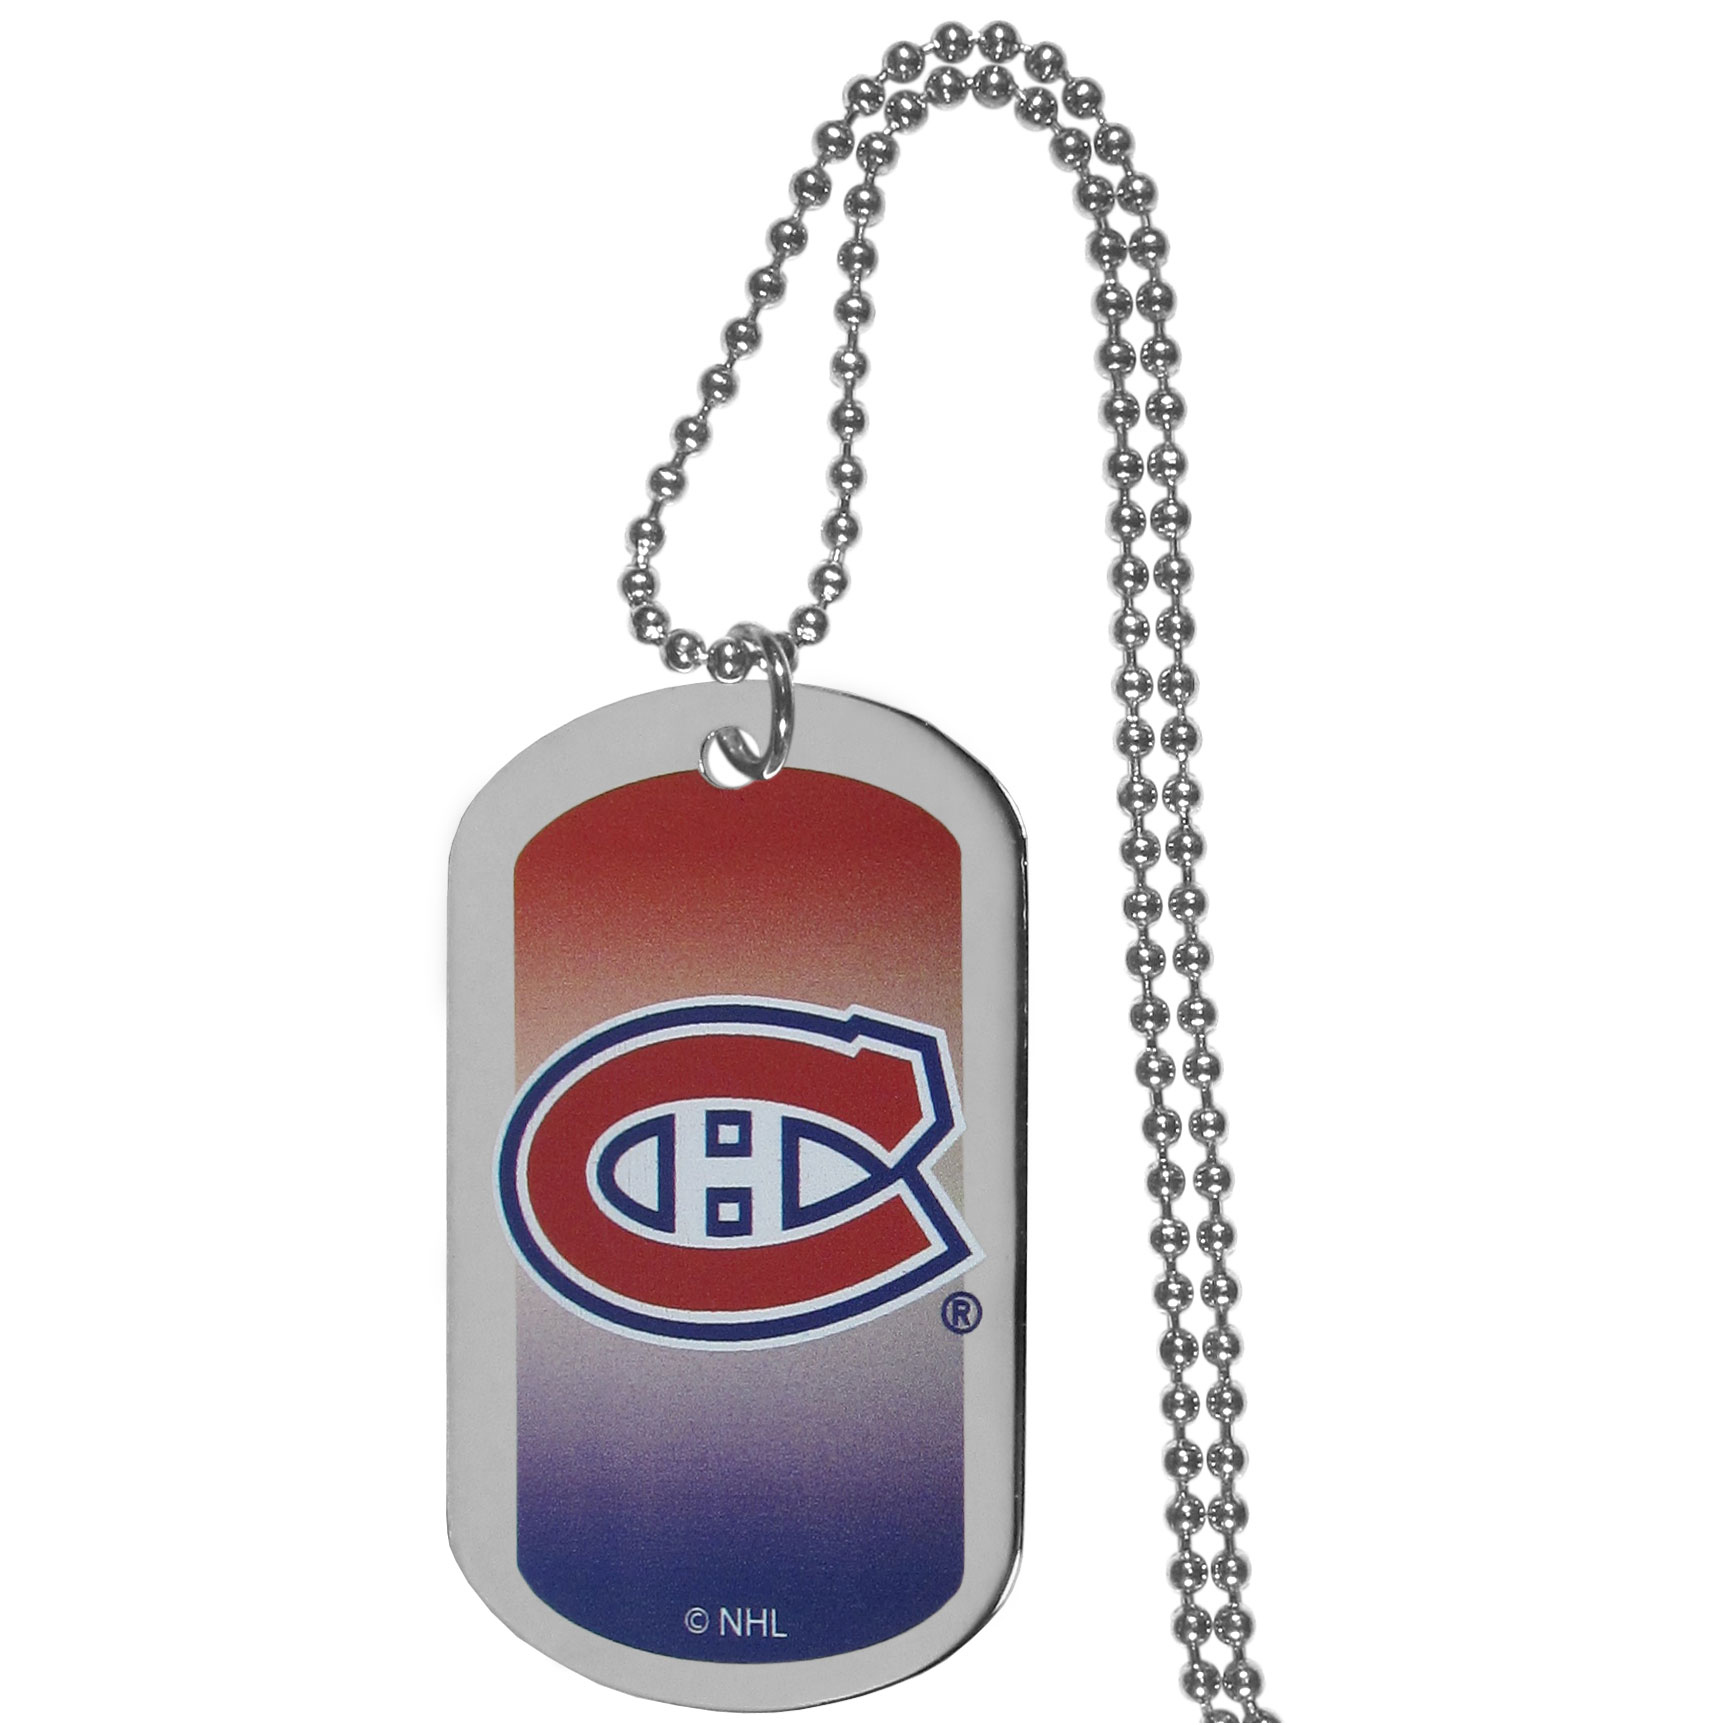 Montreal Canadiens® Team Tag Necklace - Dog tag necklaces are a fashion statement that is here to stay. The sporty version of the classic tag features a gradient print in team colors featuring a full color team logo over a high polish tag to create a bold and sporty look. The tag comes on a 26 inch ball chain with a ball and joint clasp. Any Montreal Canadiens® would be proud to wear this attractive fashion accessory.